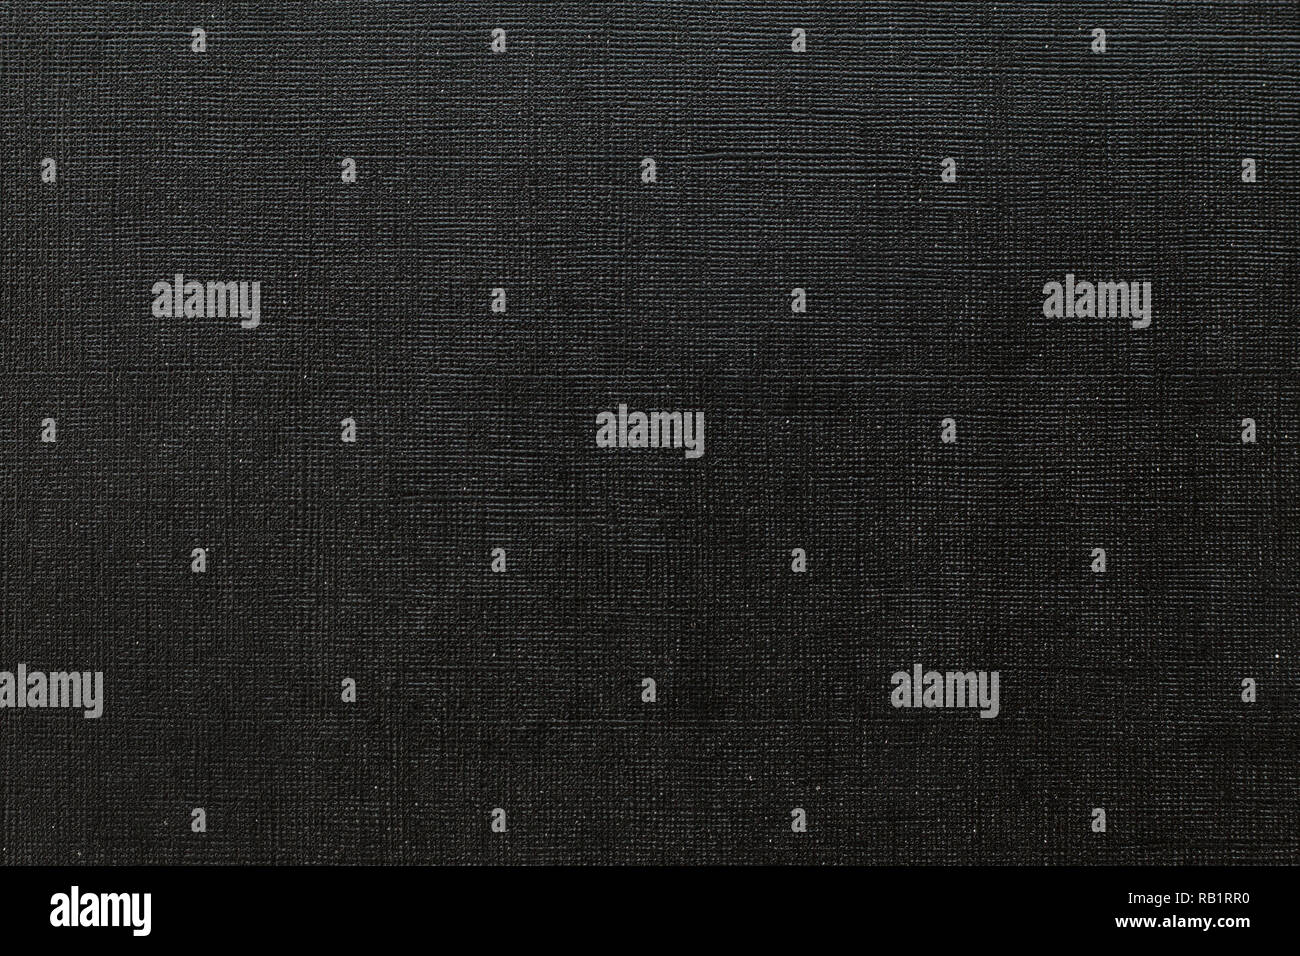 Deep black background with  grid pattern and white dots. Canvas texture of old book cover - Stock Image